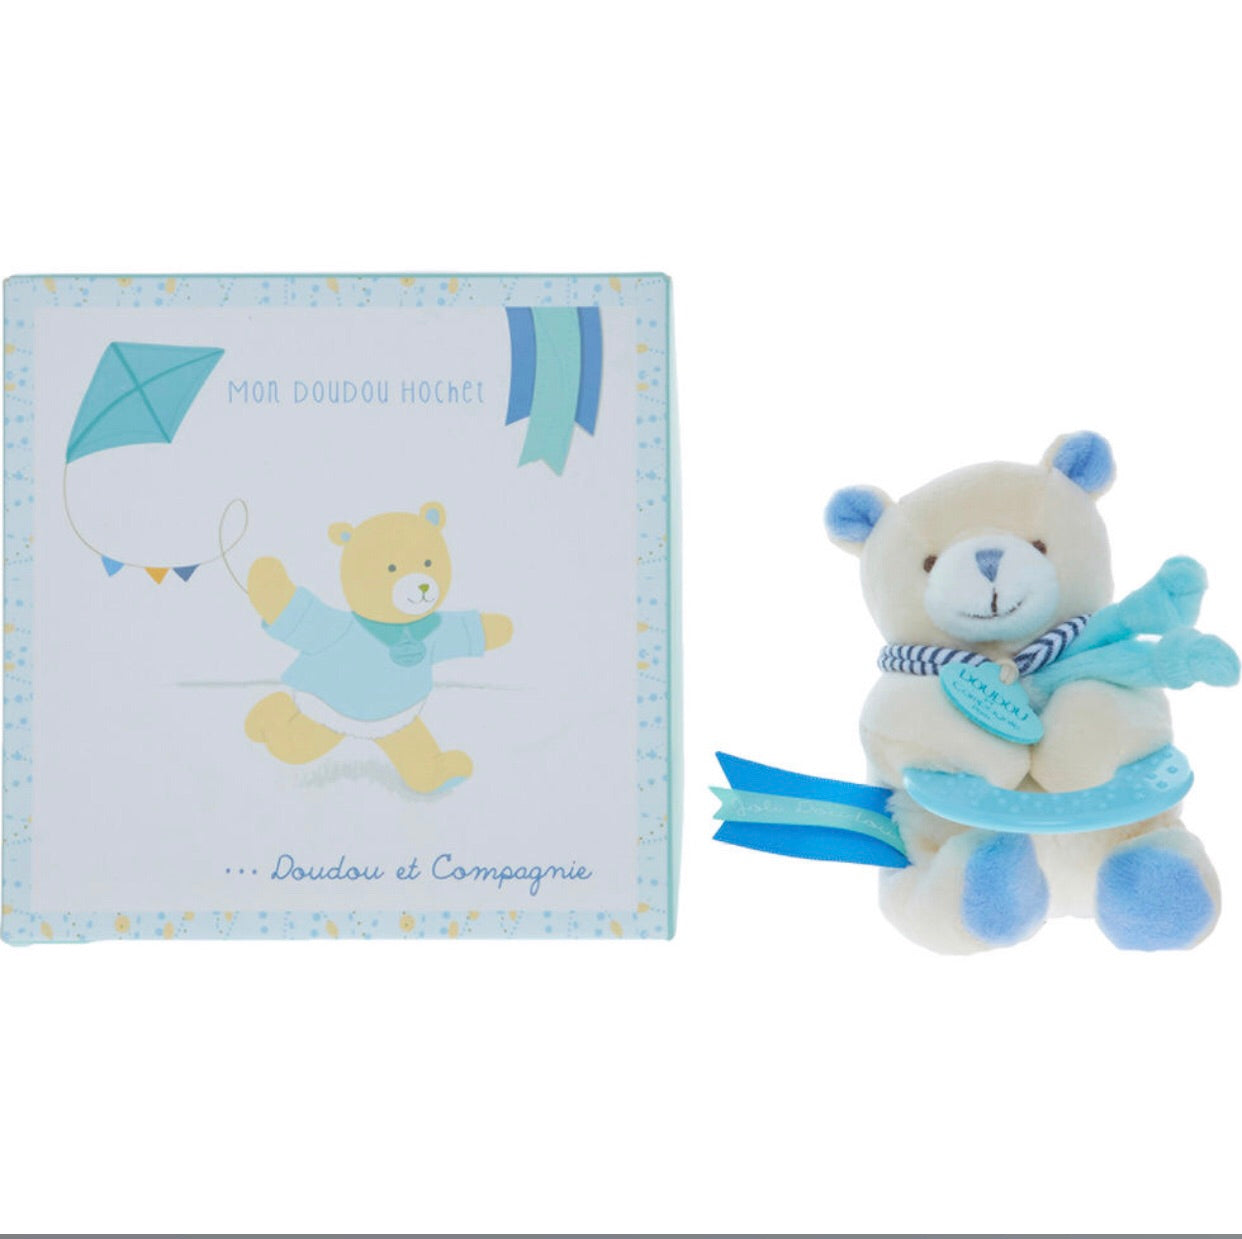 Doudou Hochet Bear Teether Toy